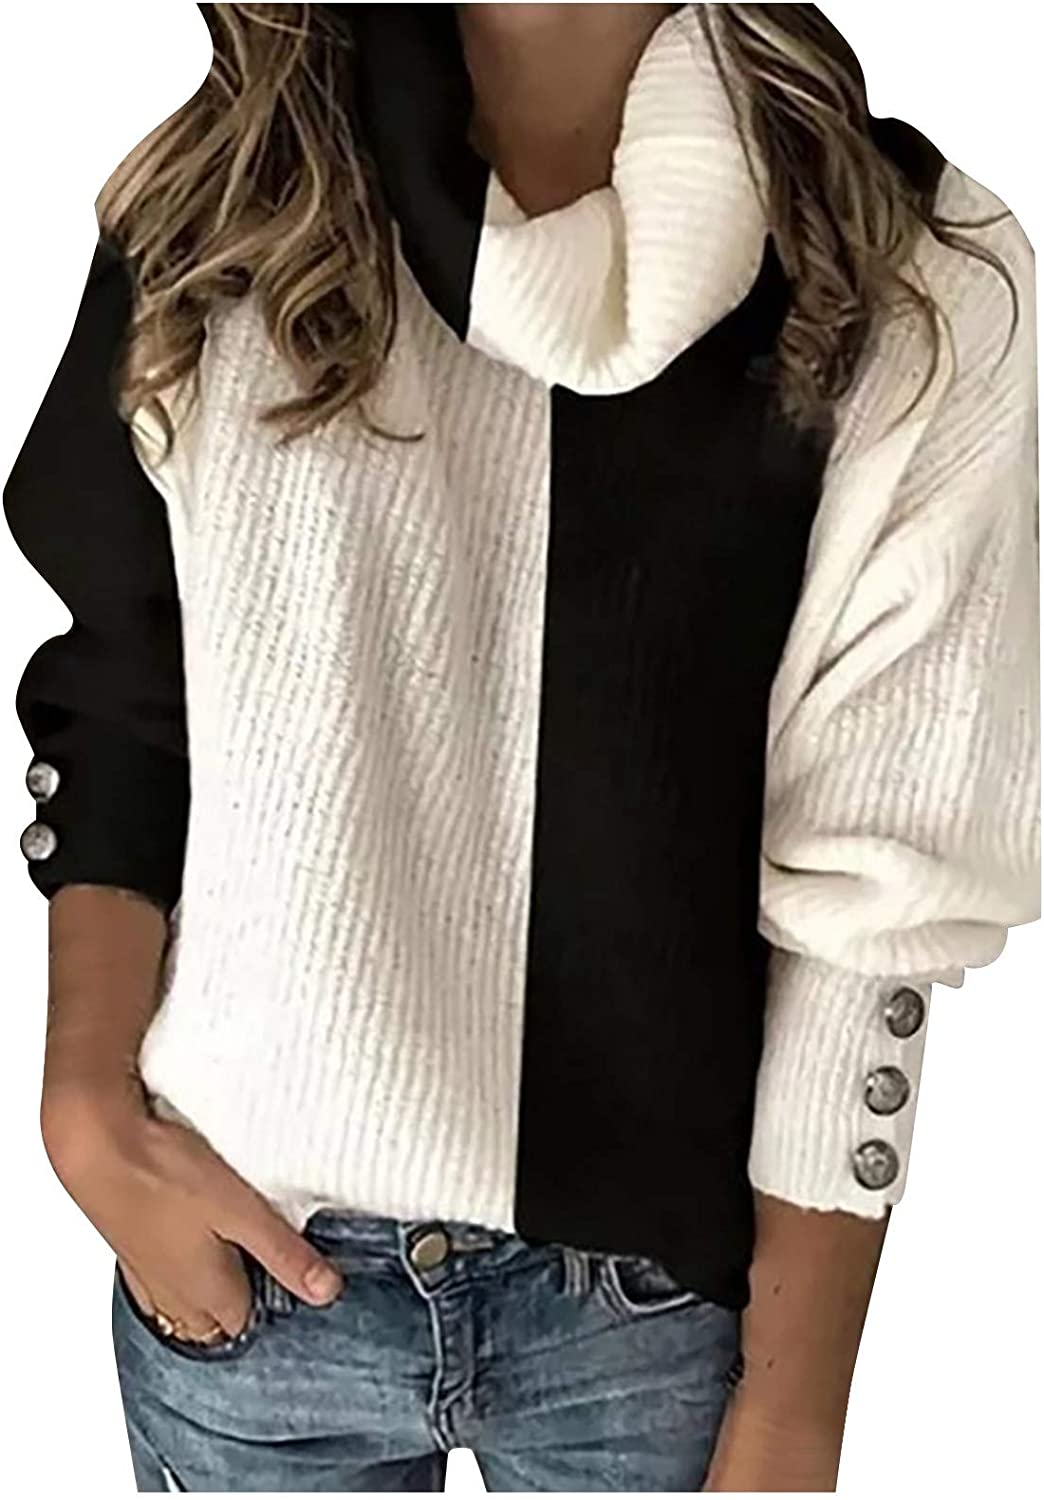 FABIURT Sweaters for Women, Womens Fashion Turtleneck Color Block Knitted Sweater Pullover Long Sleeve Casual Blouse Tops